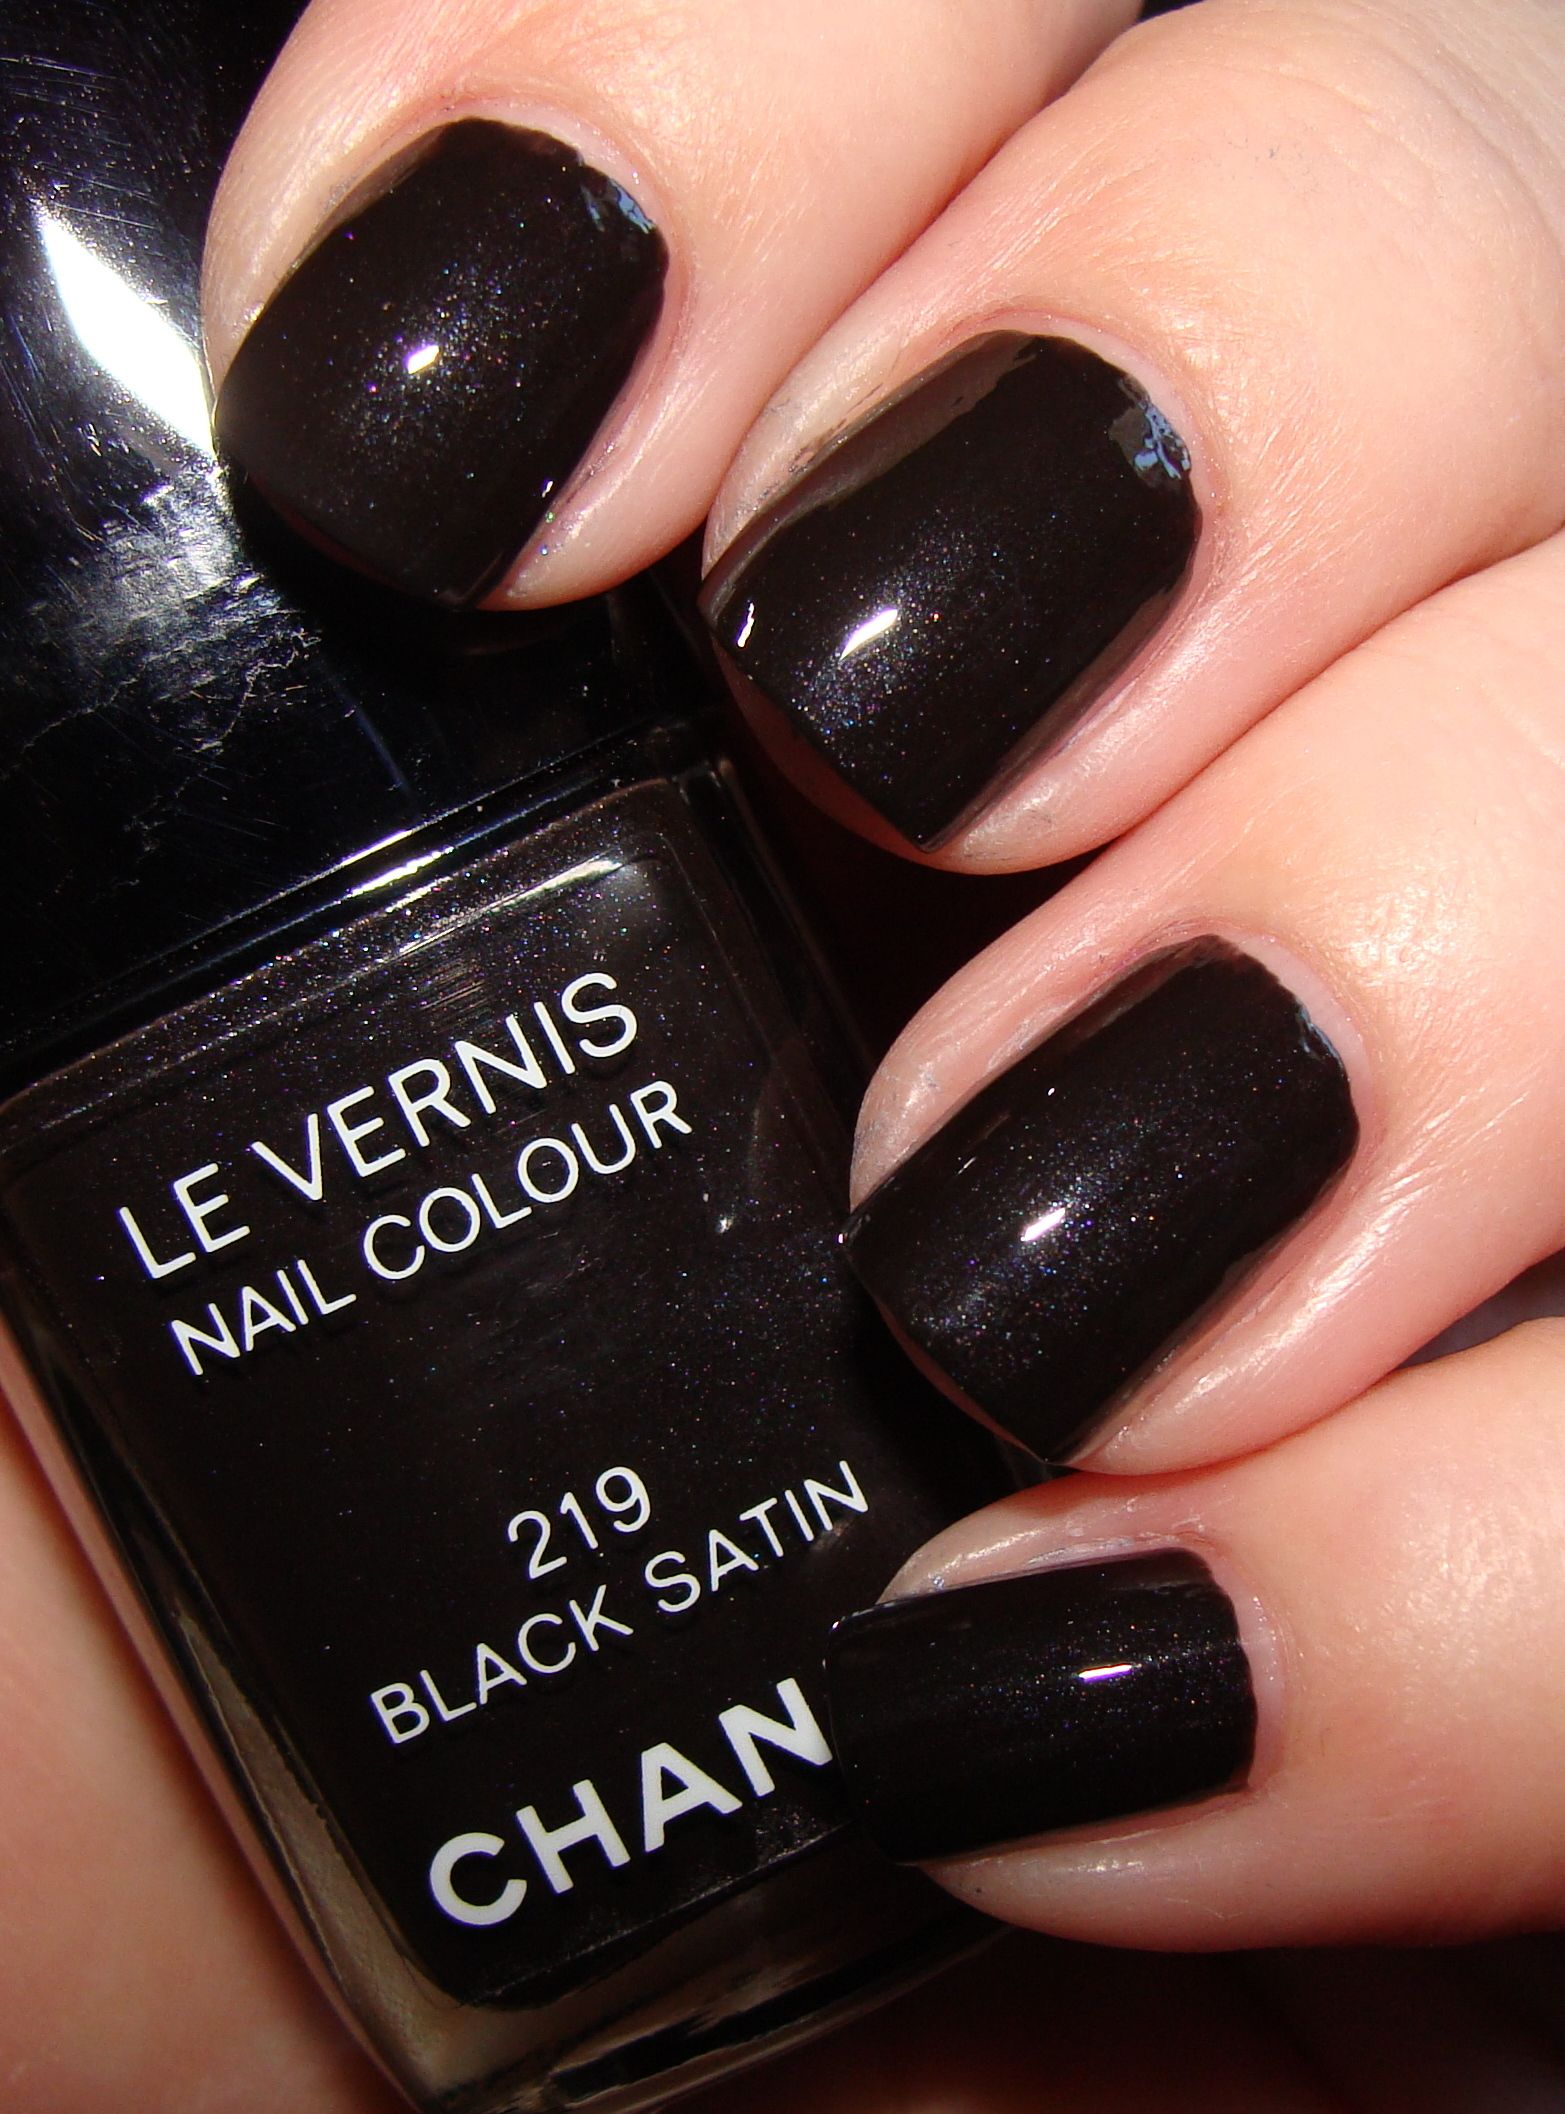 Chanel Black Satin Beautiful